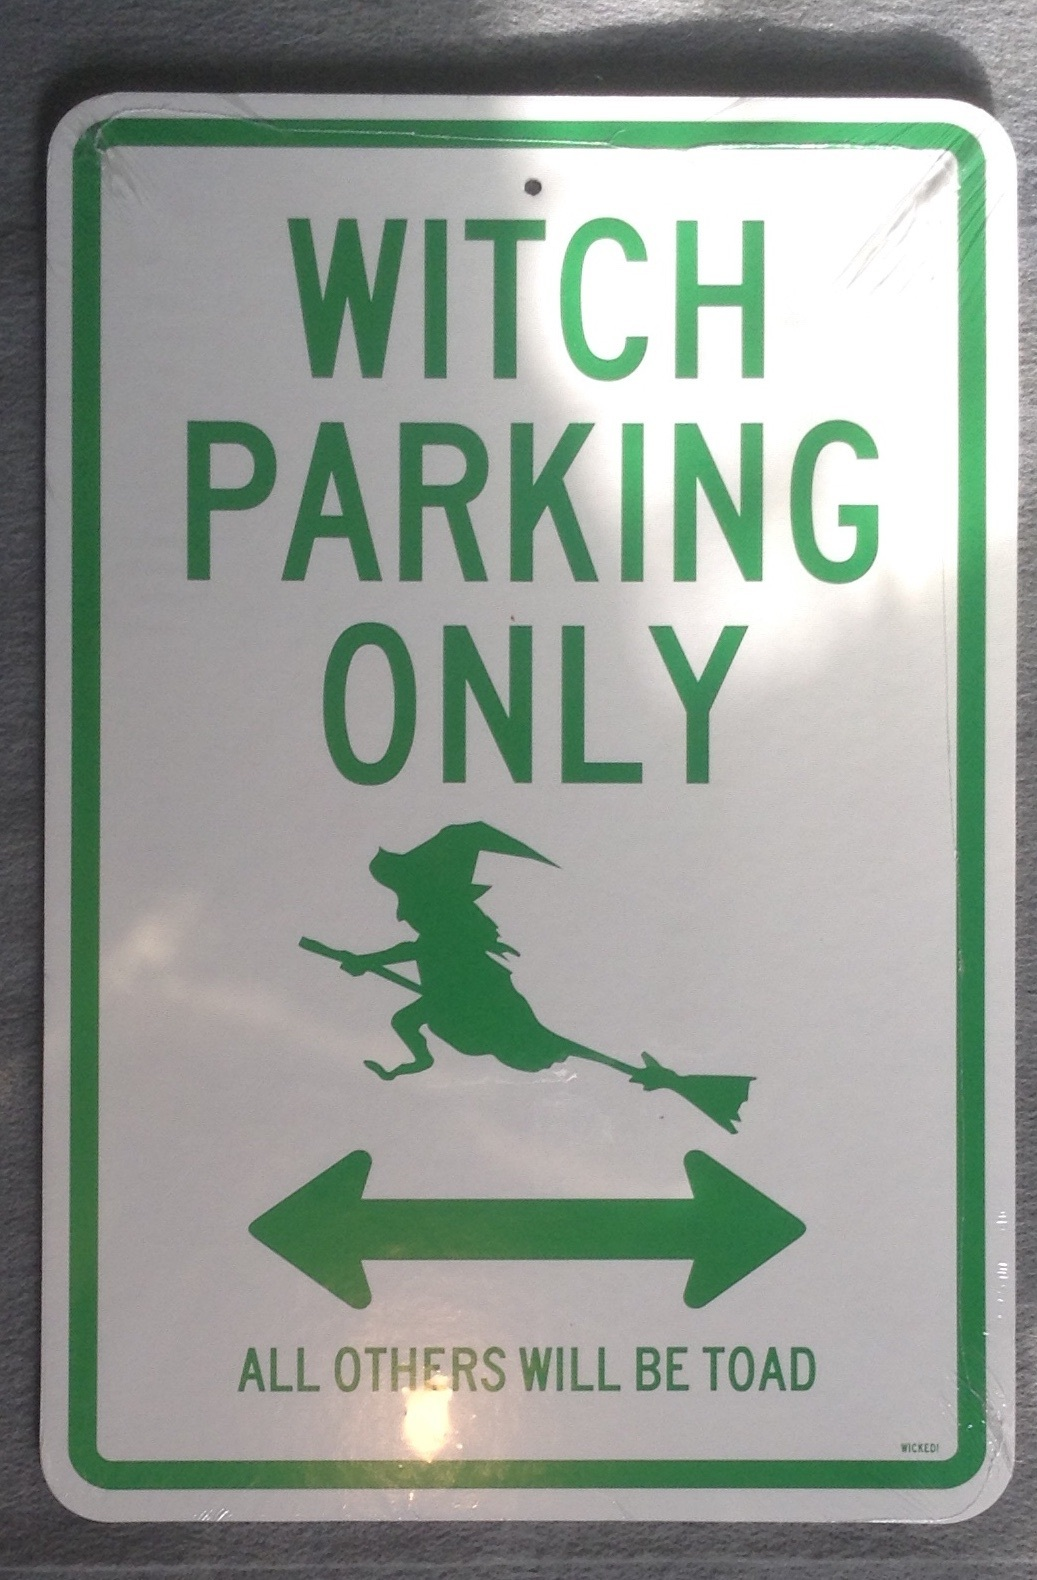 Halloween Witch Parking Only No Parking Broom Lane Indoor Cardboard Sign